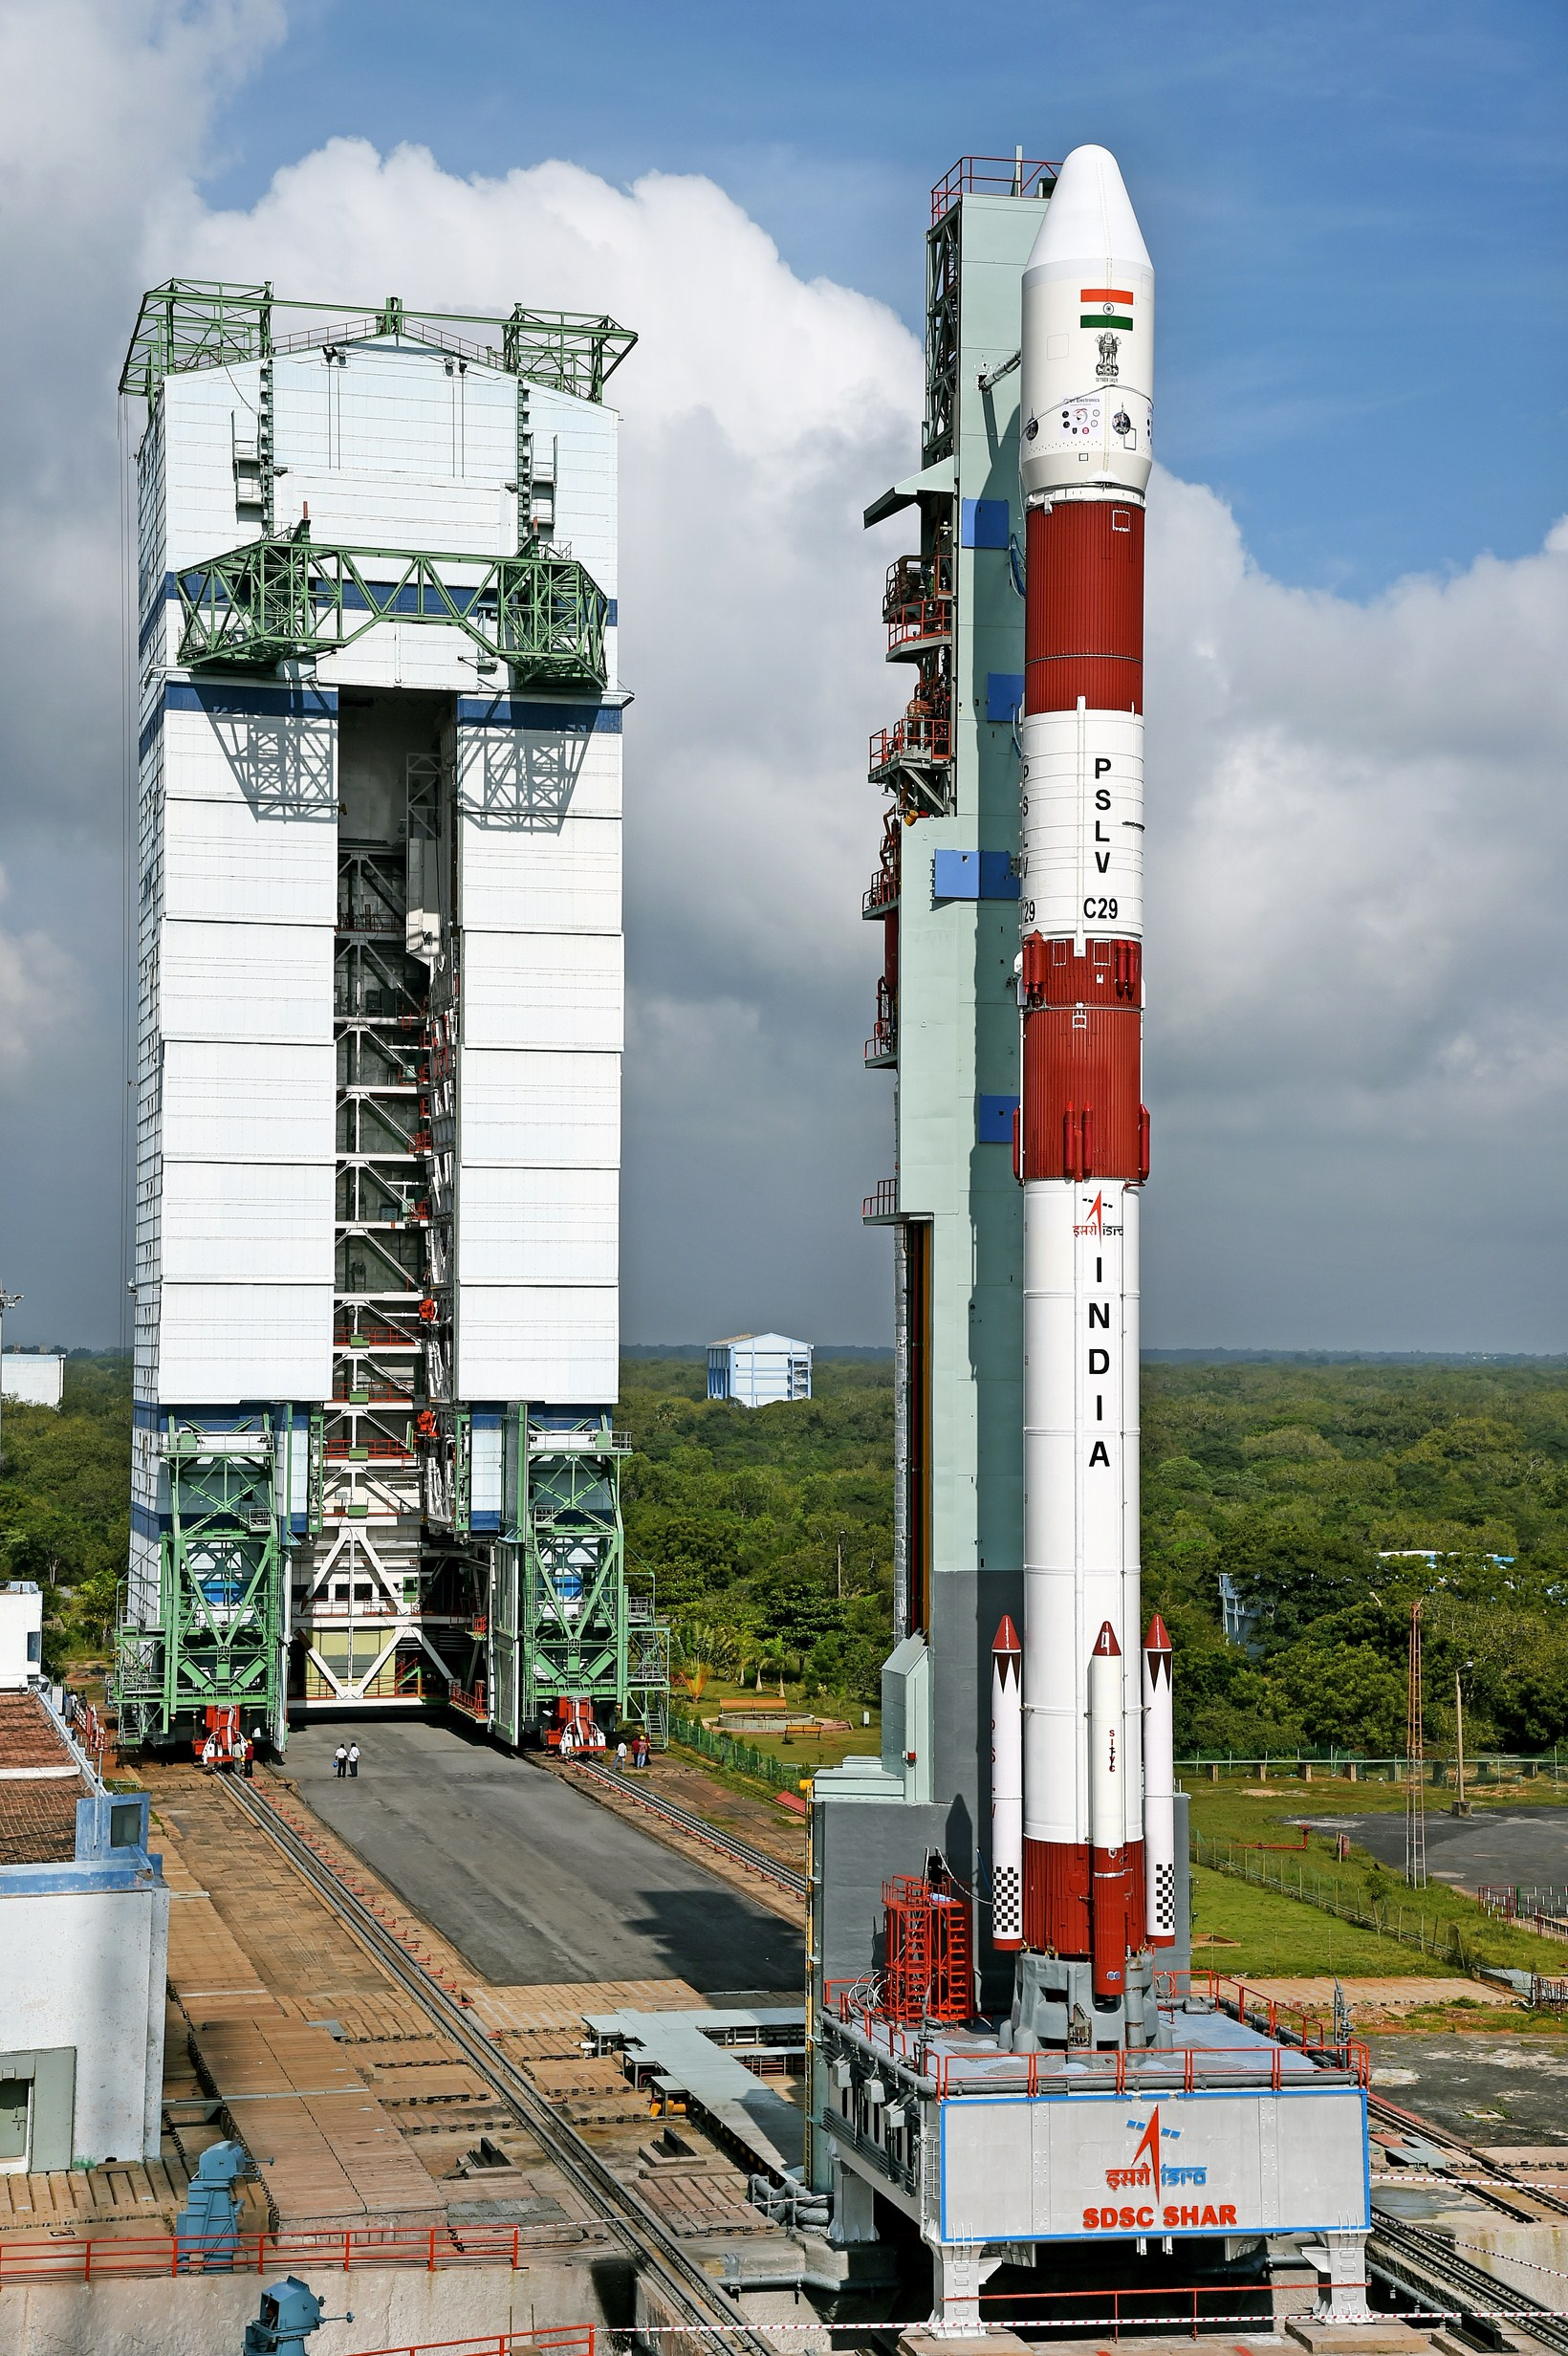 The Polar Satellite Launch Vehicle, topped by the TeLEOS 1 Earth observation satellite for Singapore, is seen during prelaunch preparations in India. Credit: ISRO